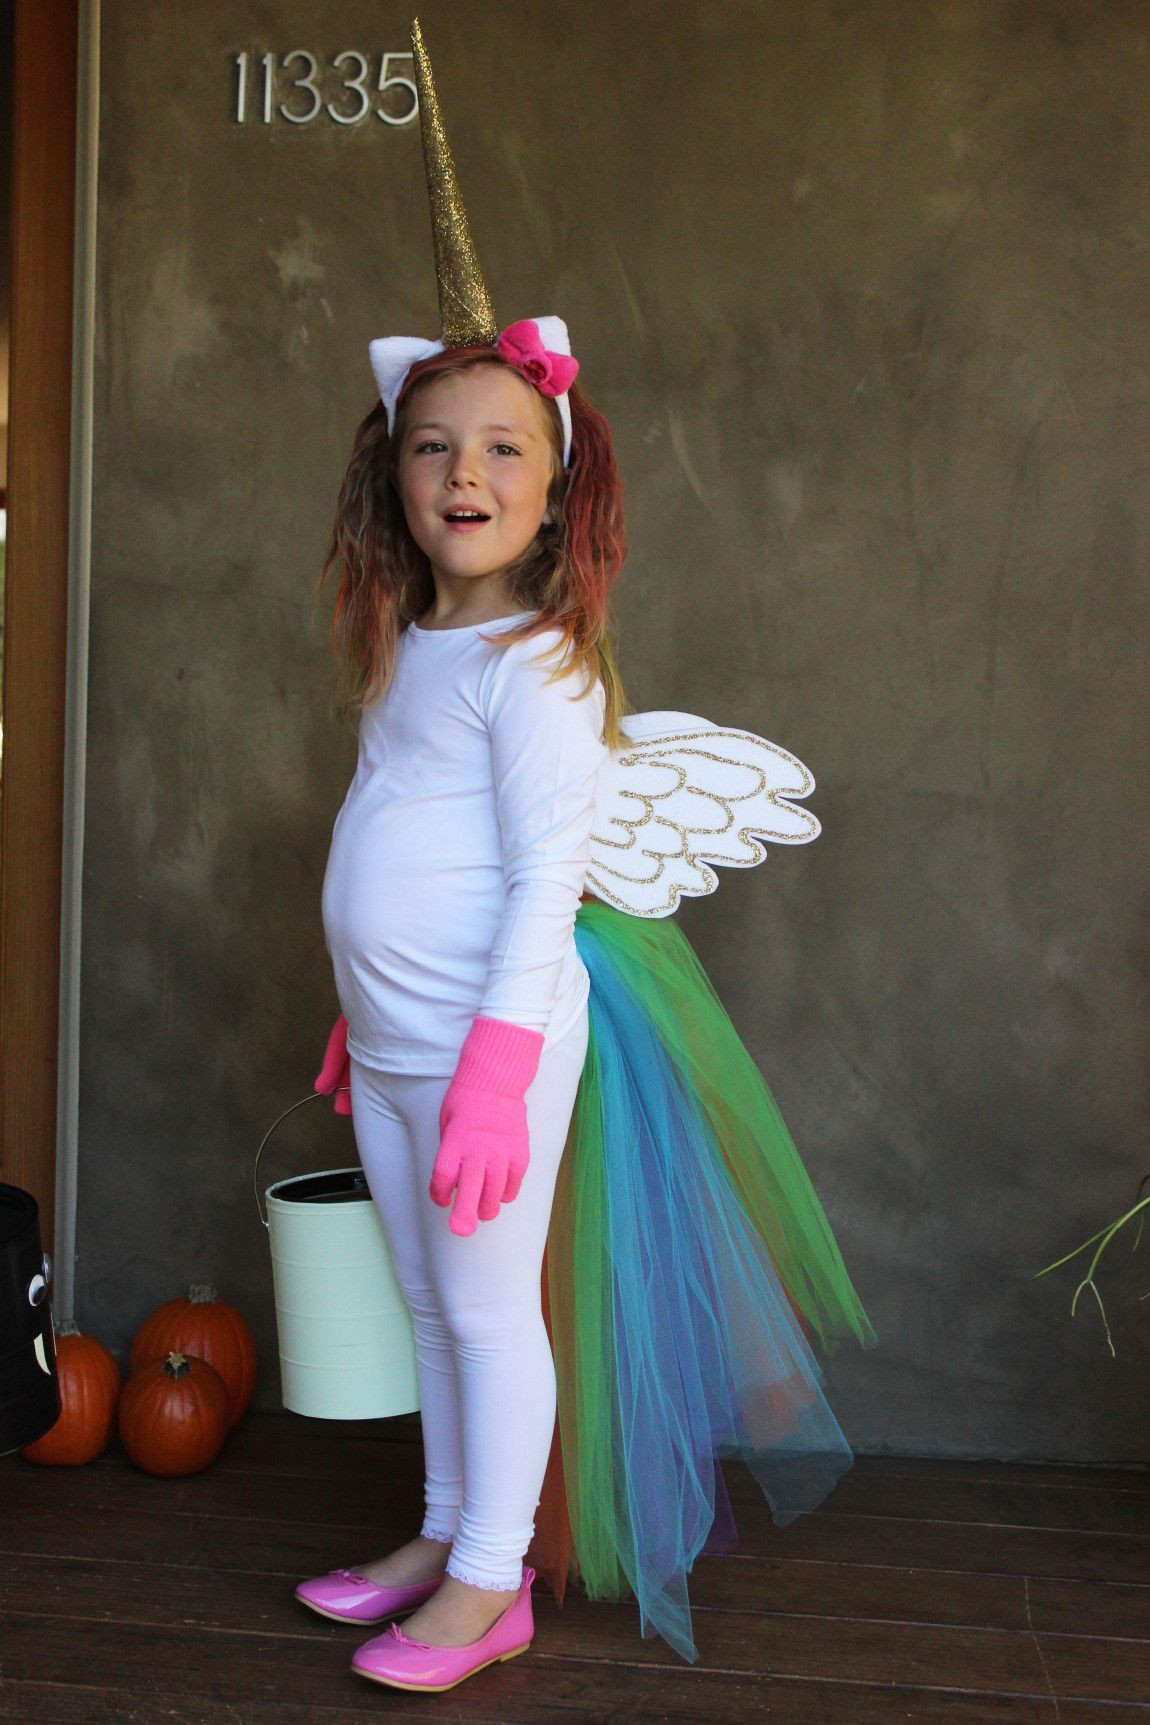 Best ideas about DIY Halloween Costumes Kids . Save or Pin 50 Best DIY Halloween Costumes For Kids in 2017 Now.